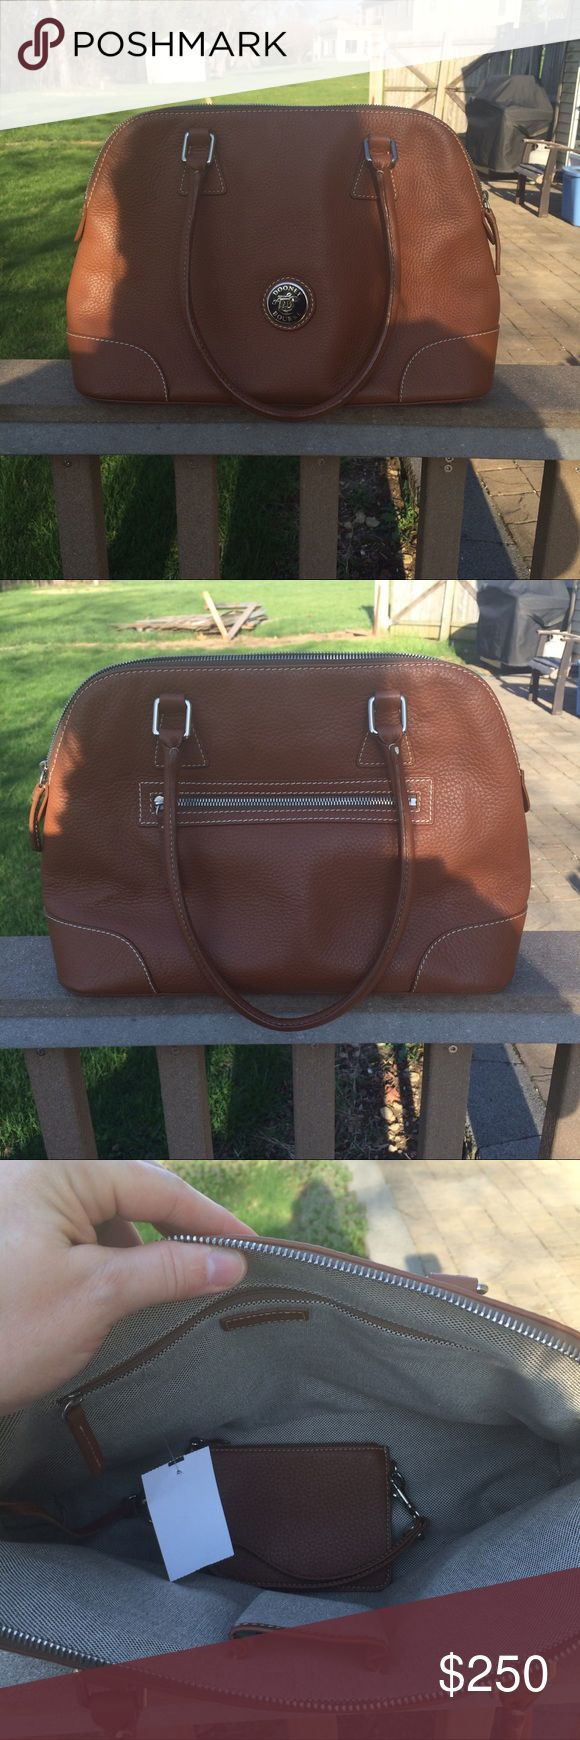 """Dooney & Bourke leather satchel bag & wristlet NWT Beautiful light brown or dark tan all weather domed satchel w/matching wristlet that had a detachable chain.  One zippered pocket on the outside, one zippered pocket on the inside, and one small open pocket on the inside.  The satchel is approx. 10-1/2"""" H x 16-1/2"""" W x 5-1/2"""" D with a 8-1/2"""" strap drop.  It zippers closed across the top.  The detachable wristlet is approx 4"""" H x 5-3/4"""" W.  Little metal feet on the bottom.  Very nice. Sold on…"""